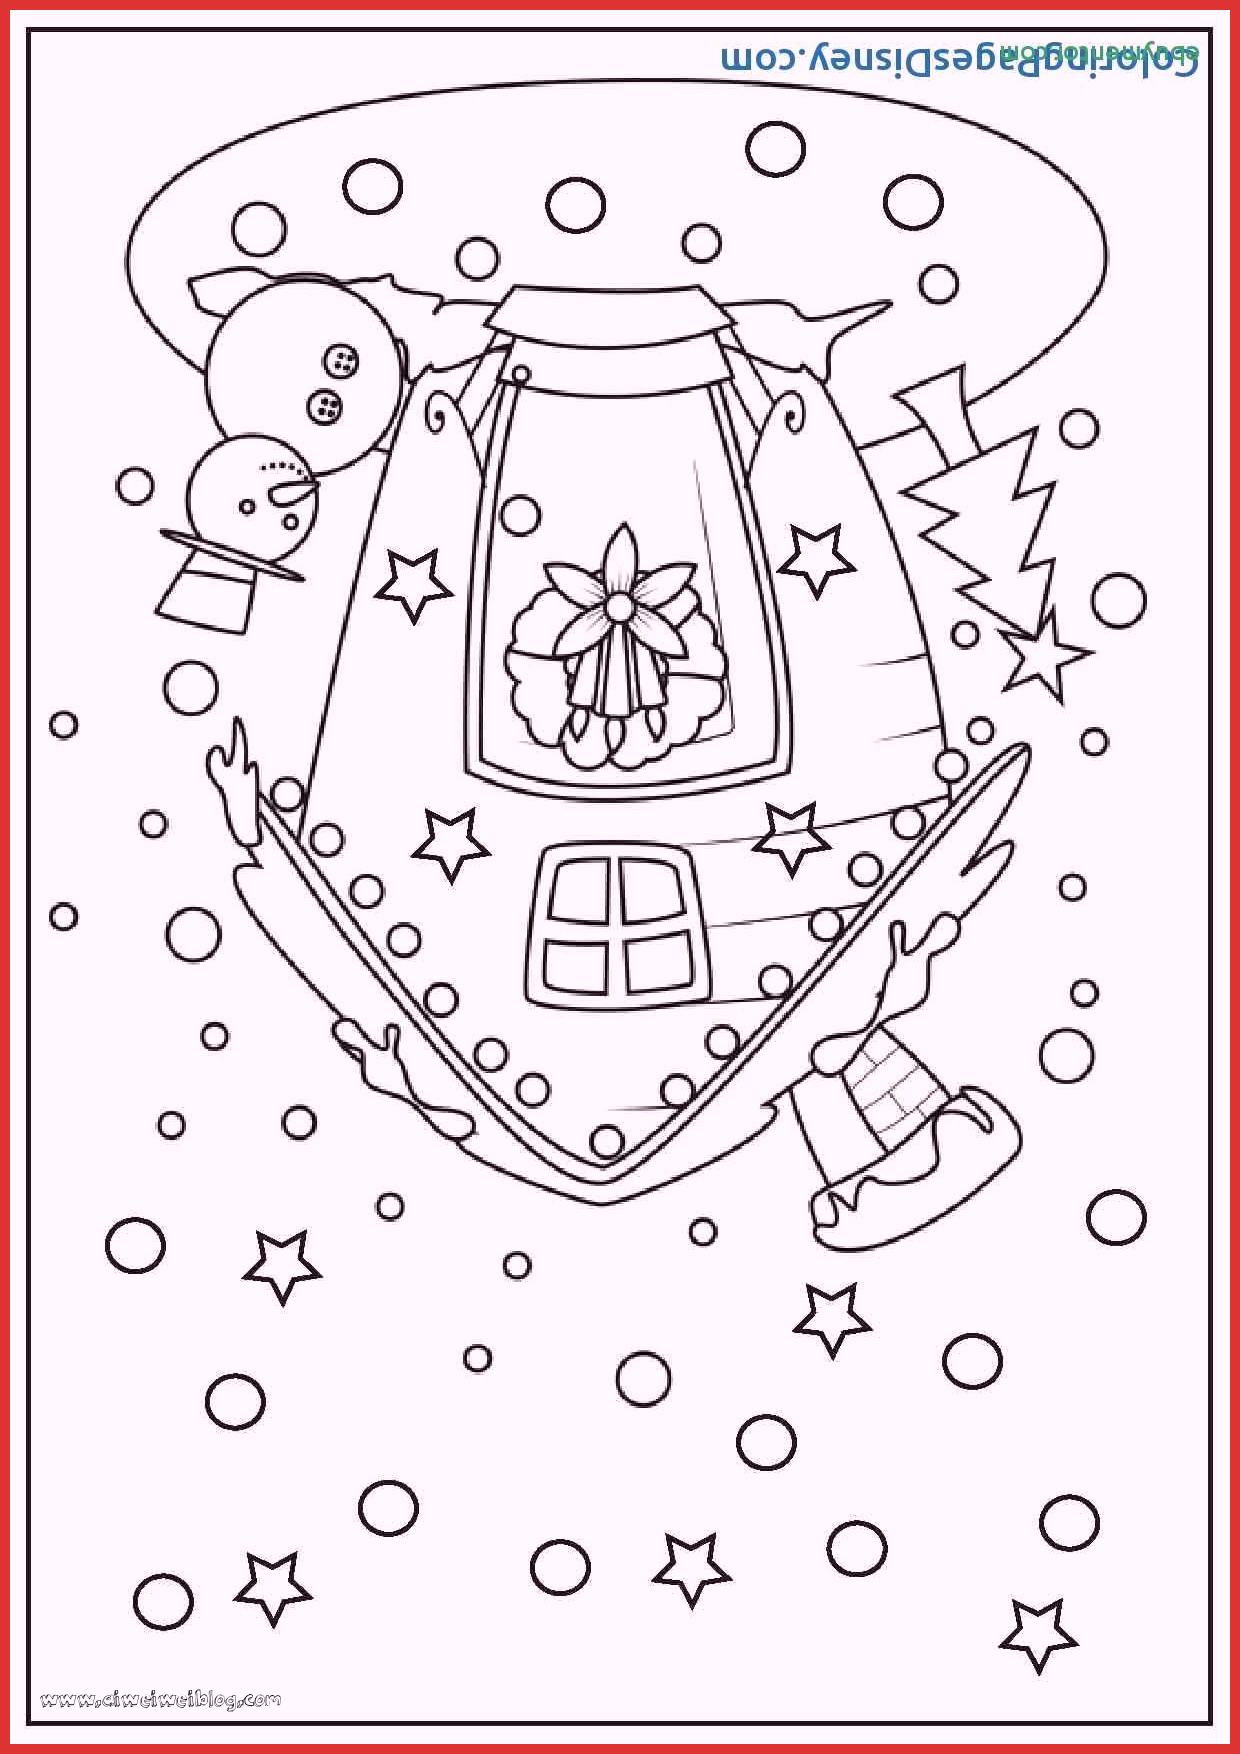 Christmas Worksheets Ideas for Preschoolers Best Of Preschool Christmas Worksheet Pdf Valentine Coloring Sheets